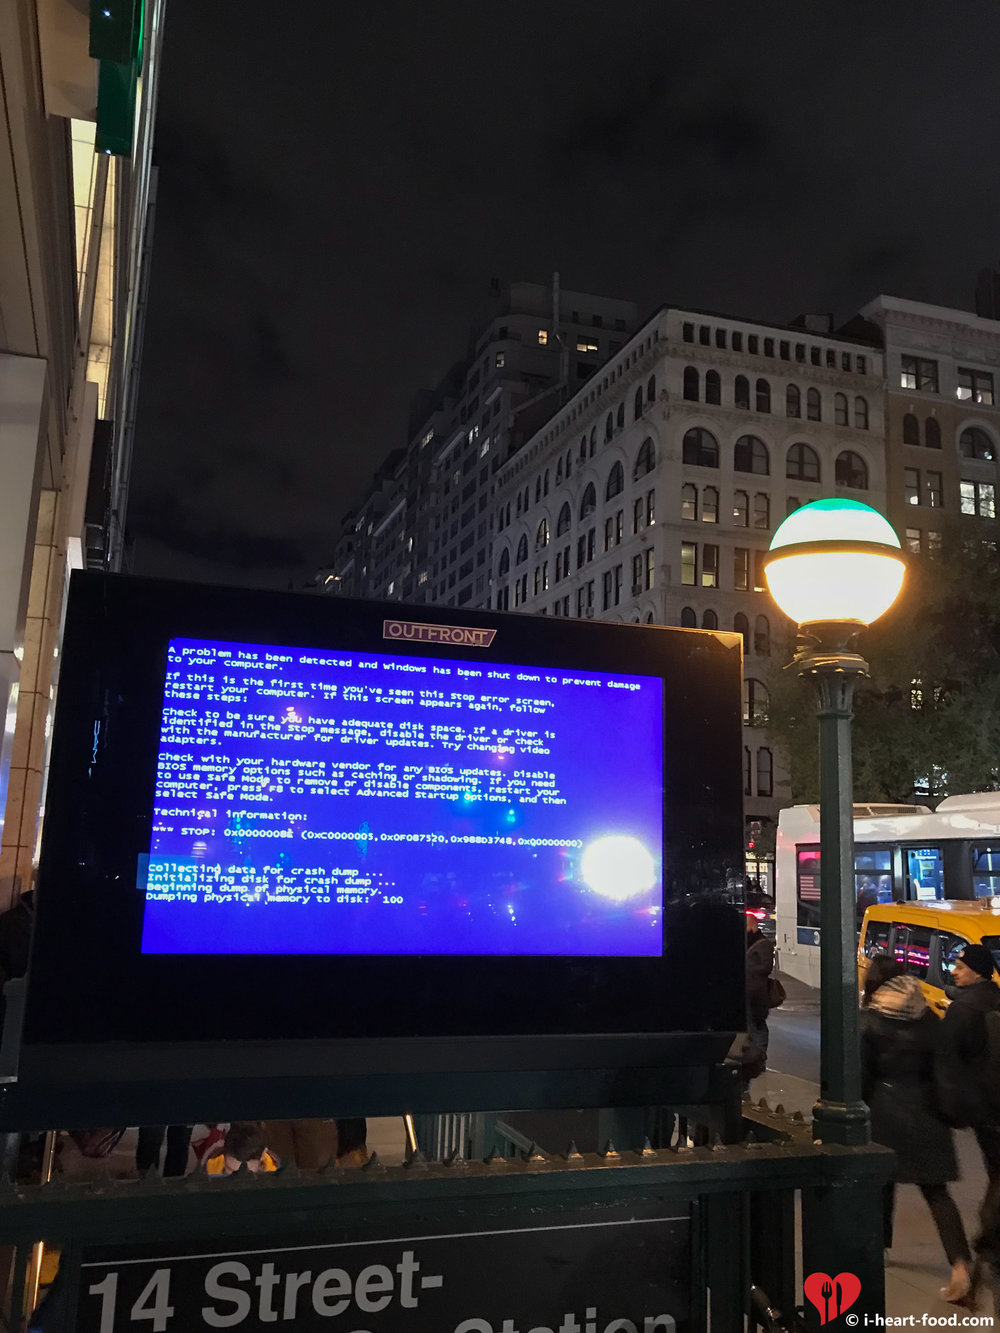 Union Square BSOD, I had to take a pic lol